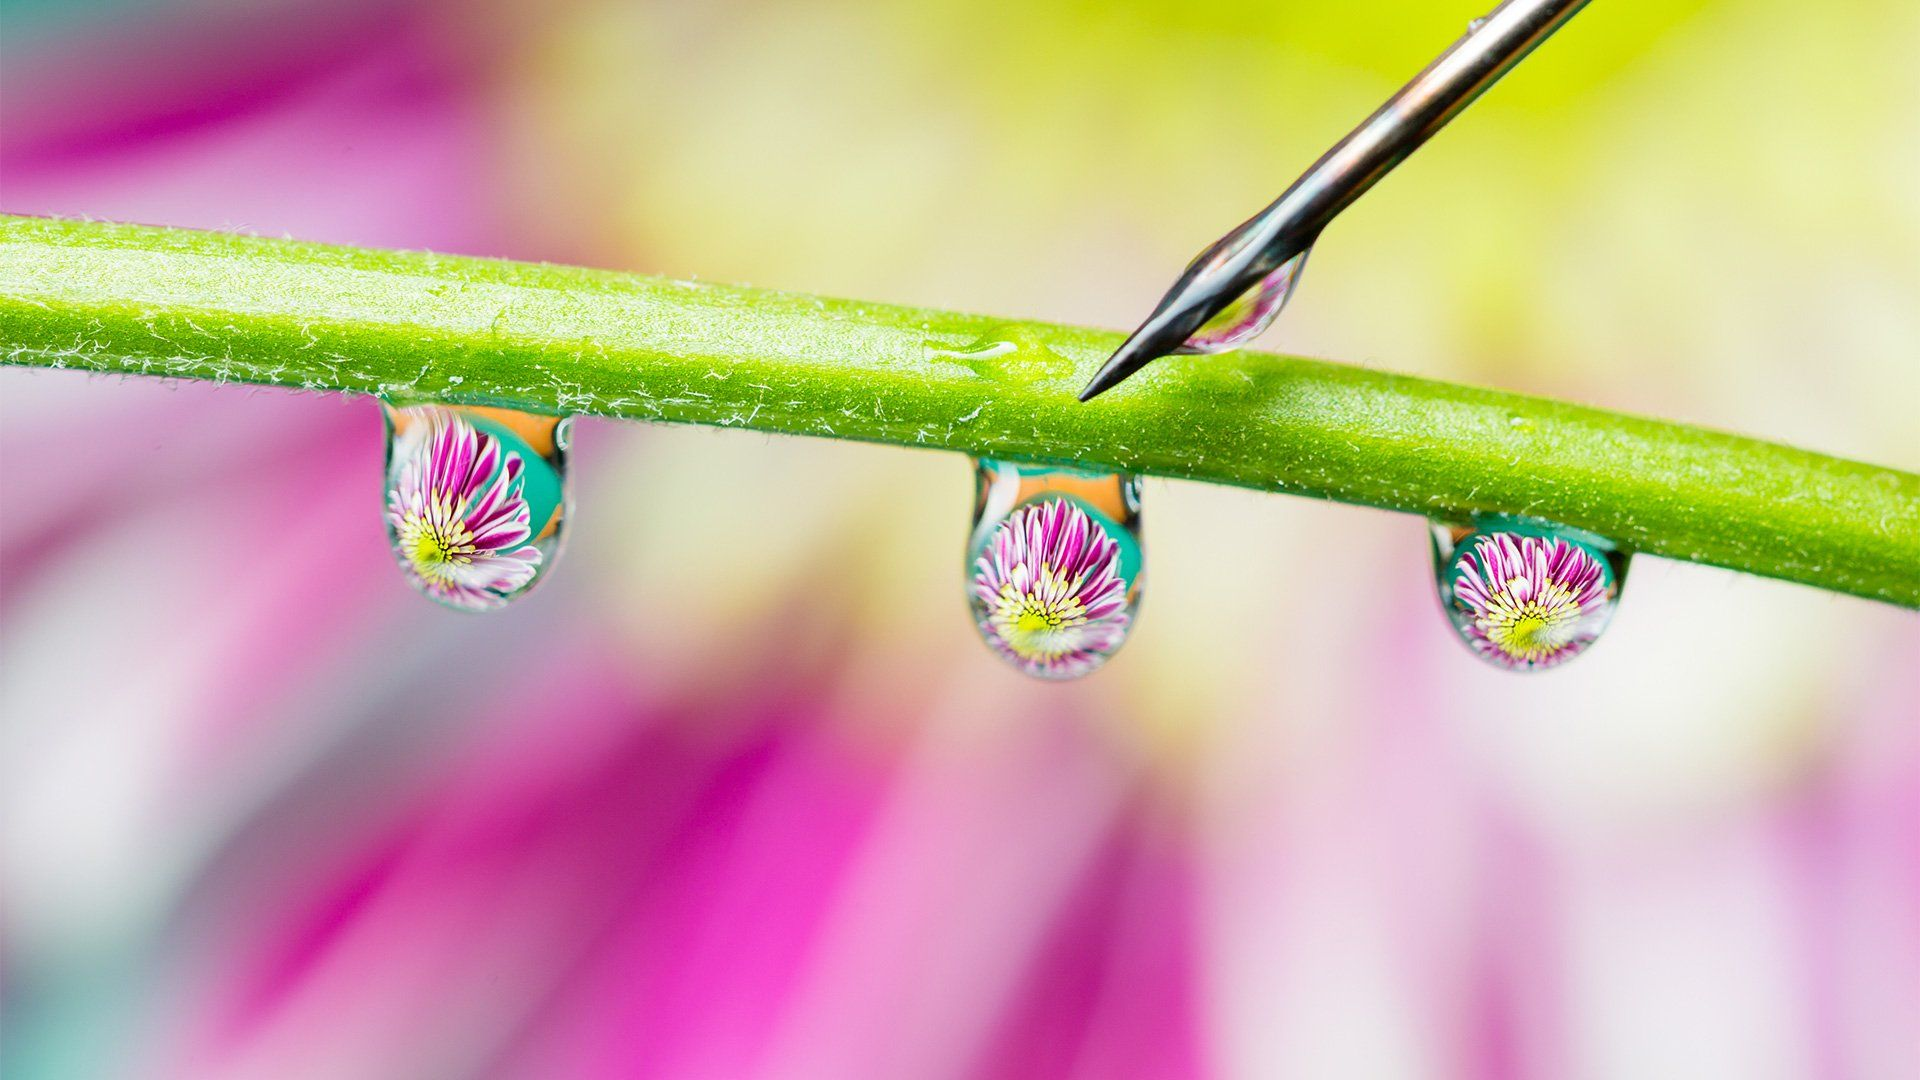 Three water droplets on a flower stem being placed by a needle.